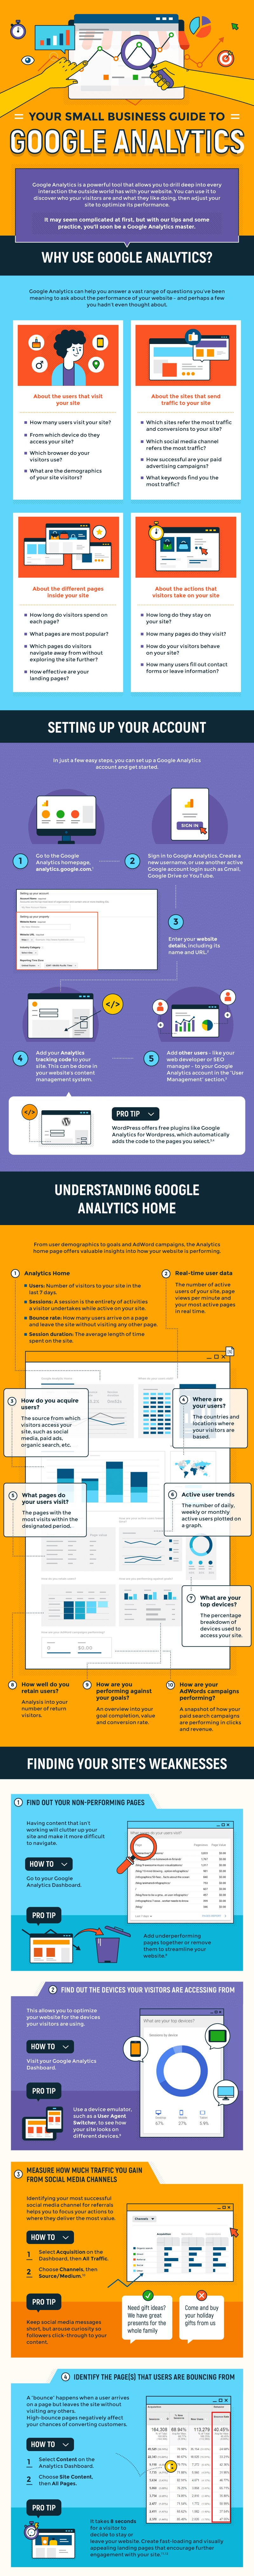 Infographic: Google Analytics for Small Business